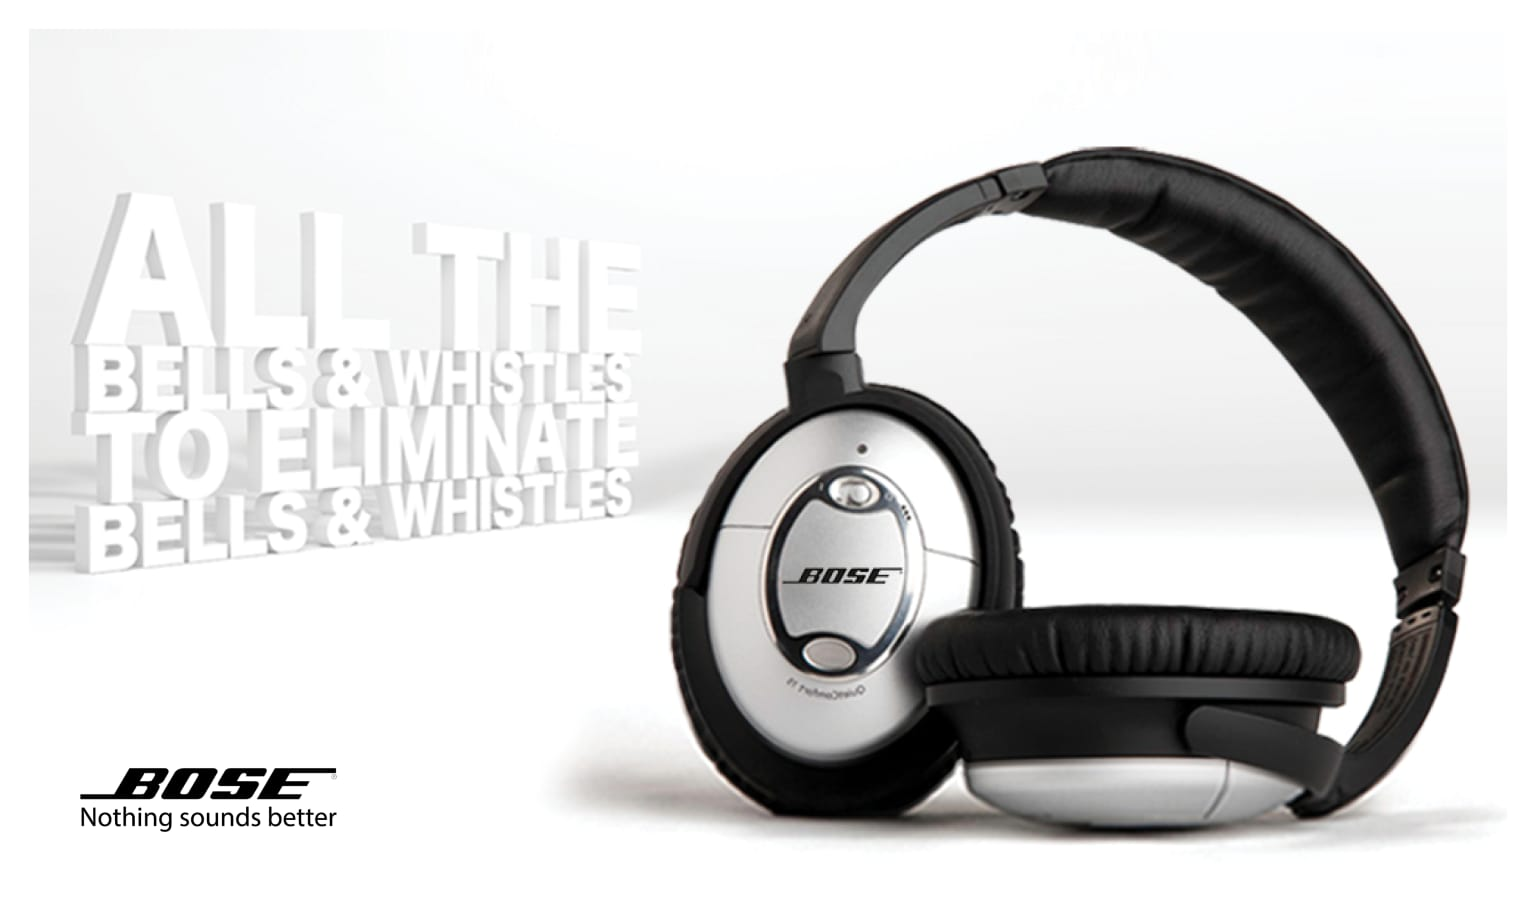 Bose: Nothing Sounds Better